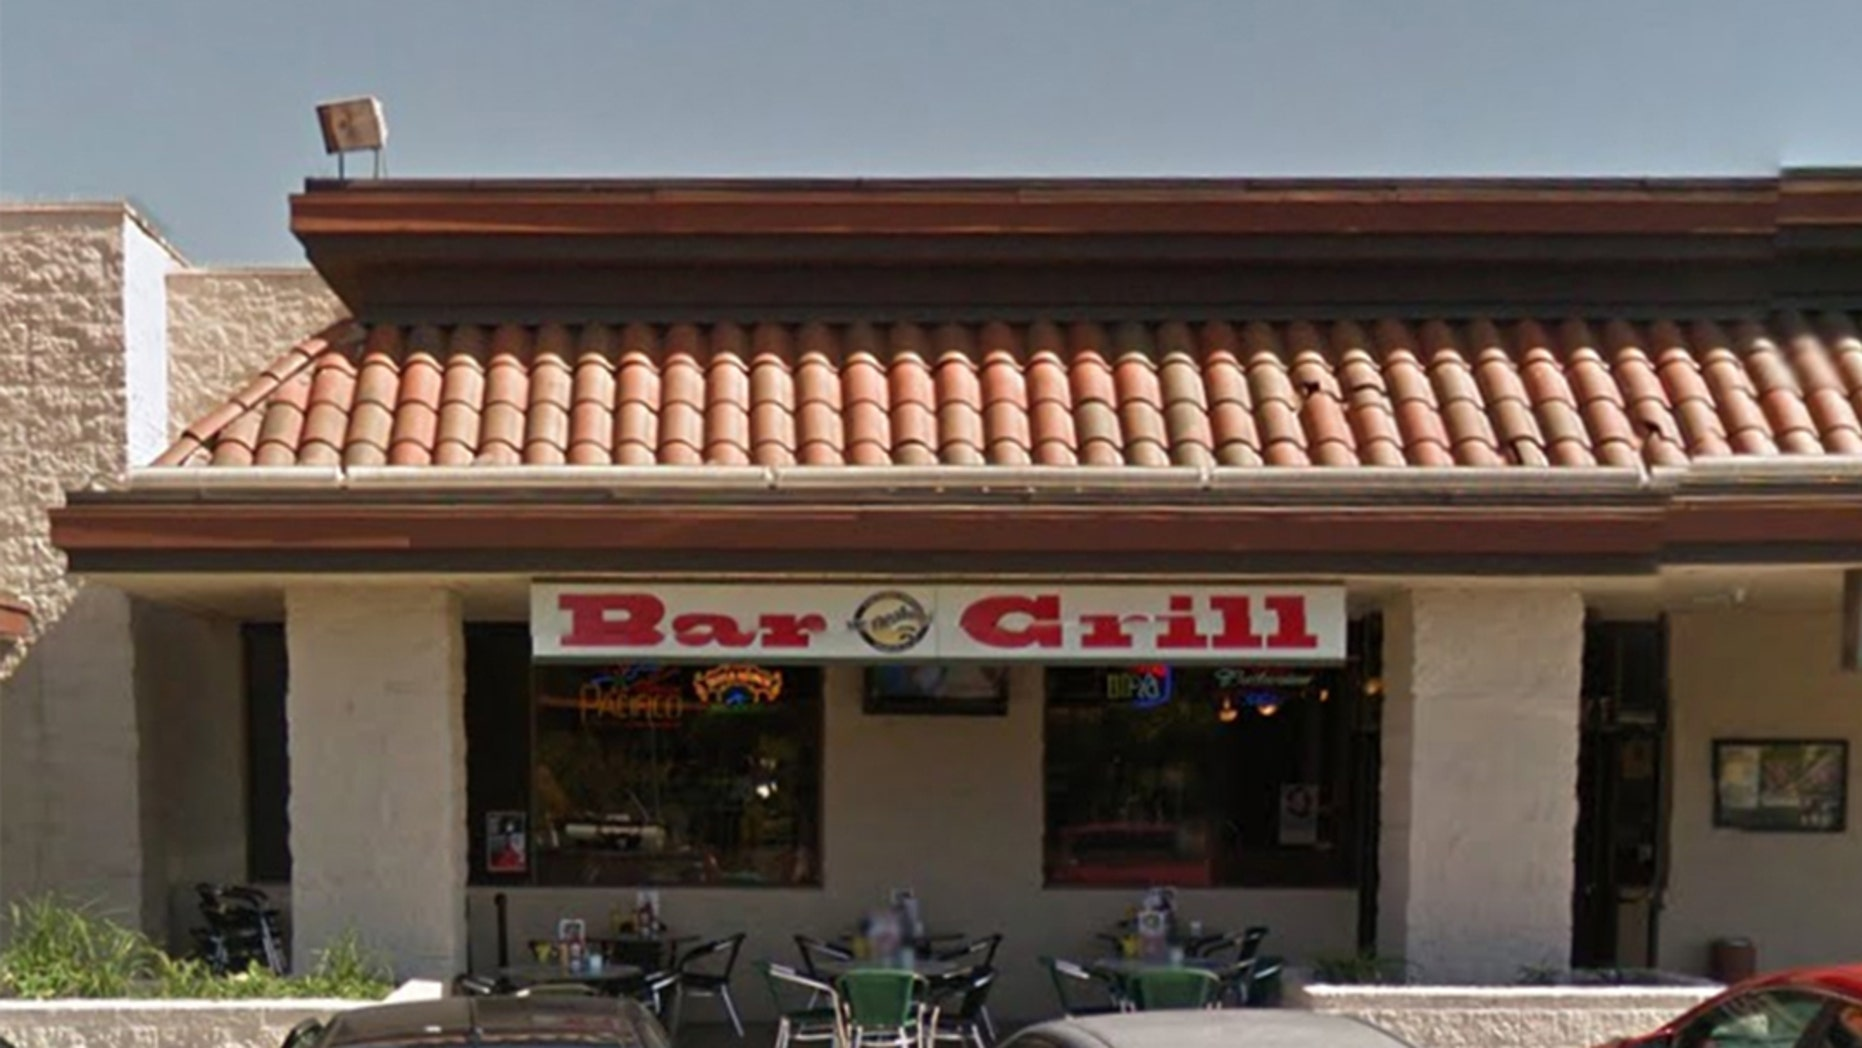 The California eatery has been smacked with a fine that they claim was without warning.